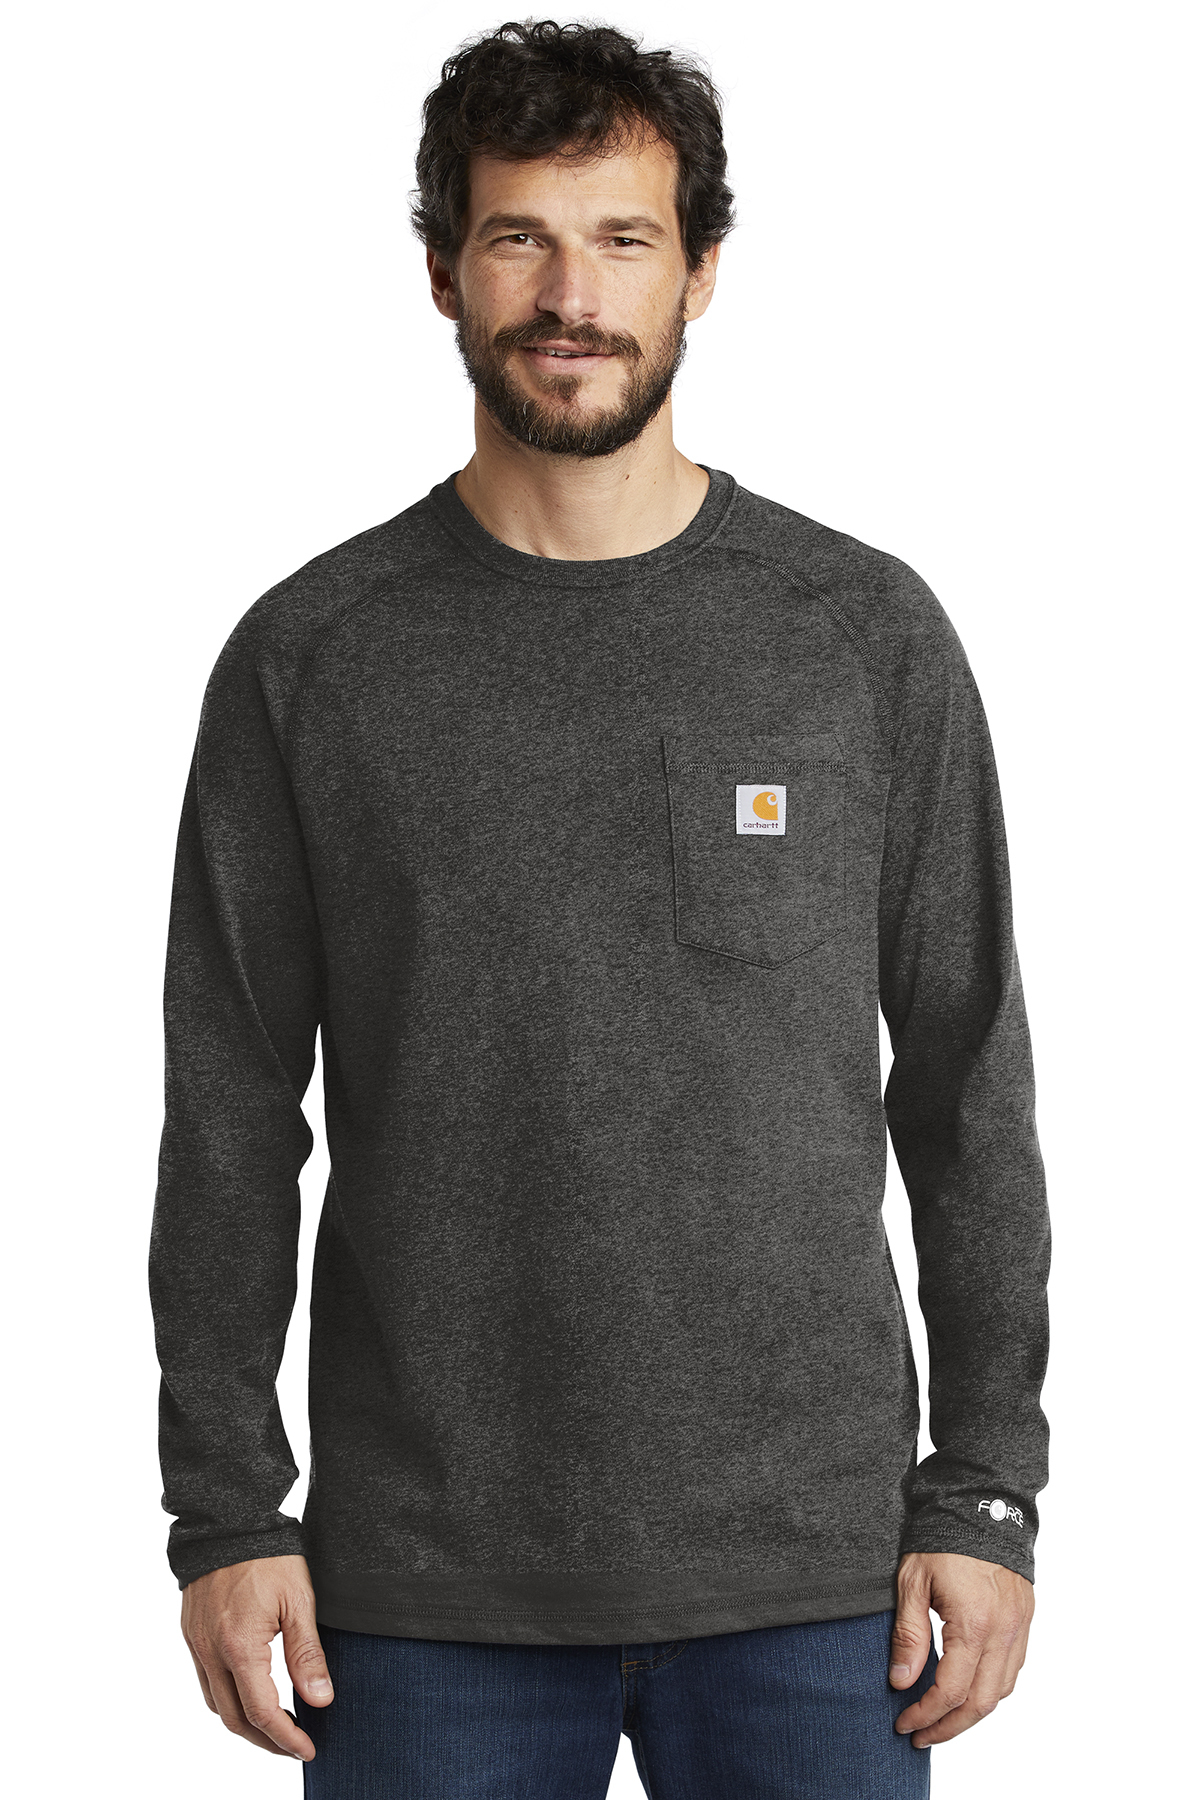 Carhartt Force CT100393 - Cotton Delmont Long Sleeve T-Shirt